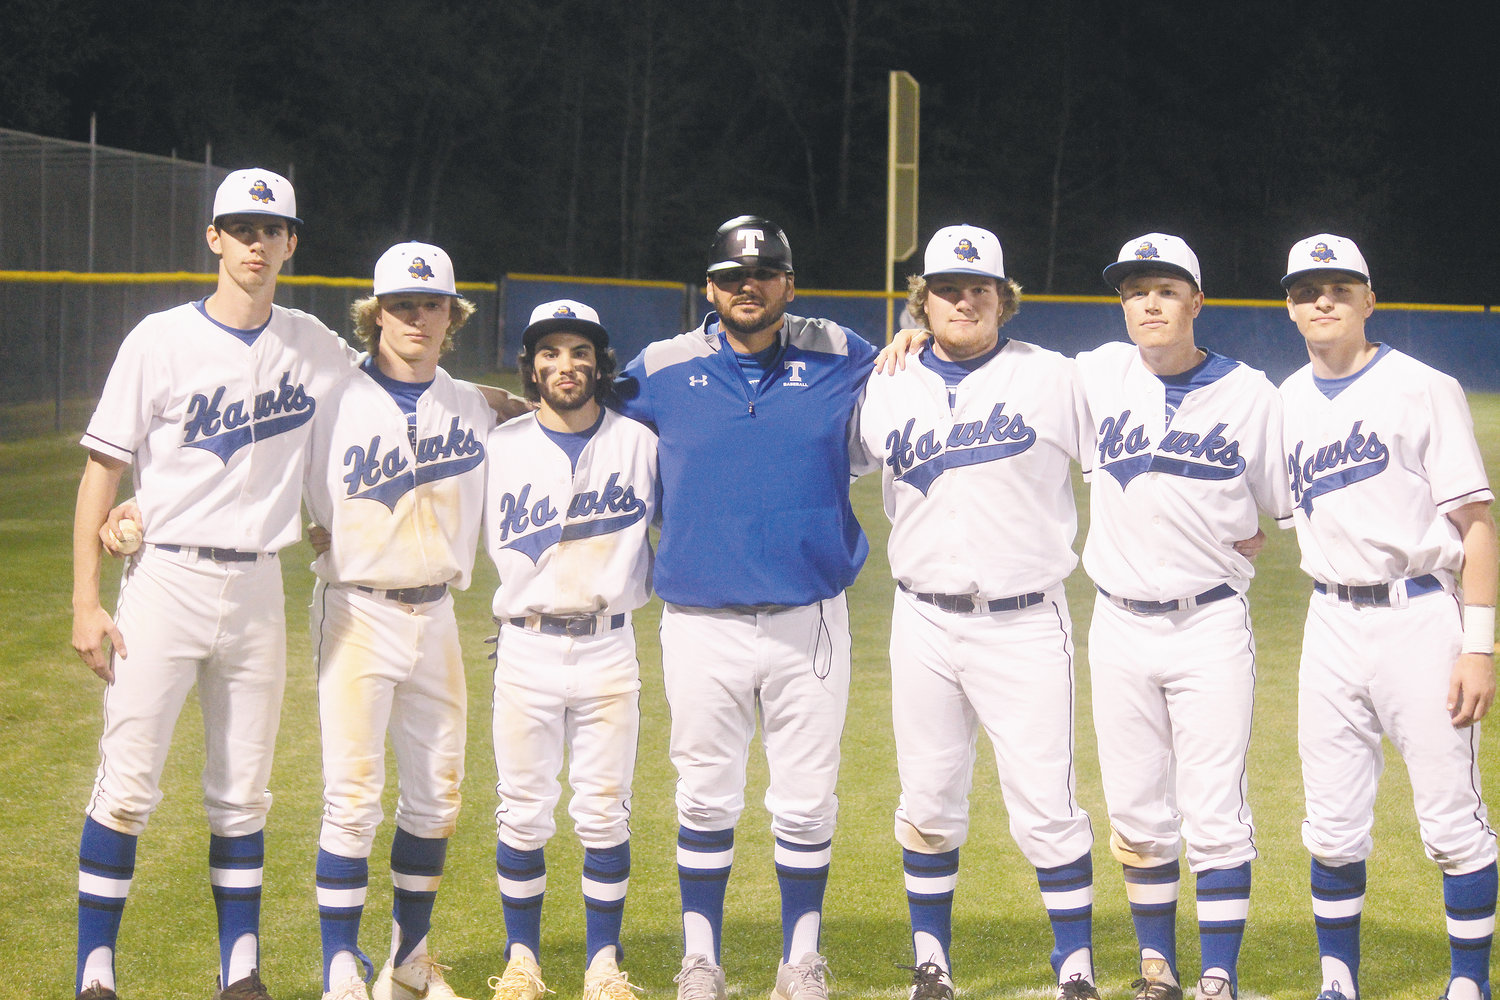 Triton baseball coach Joey Miriello (center) stands with his six seniors after the Hawks' 5-4 win over Lee County on Thursday. From left, they are: Colby Norris, Colton Neighbors, Bert Strickland, Greg Godwin, Parker Crews and Austin Riewestahl.